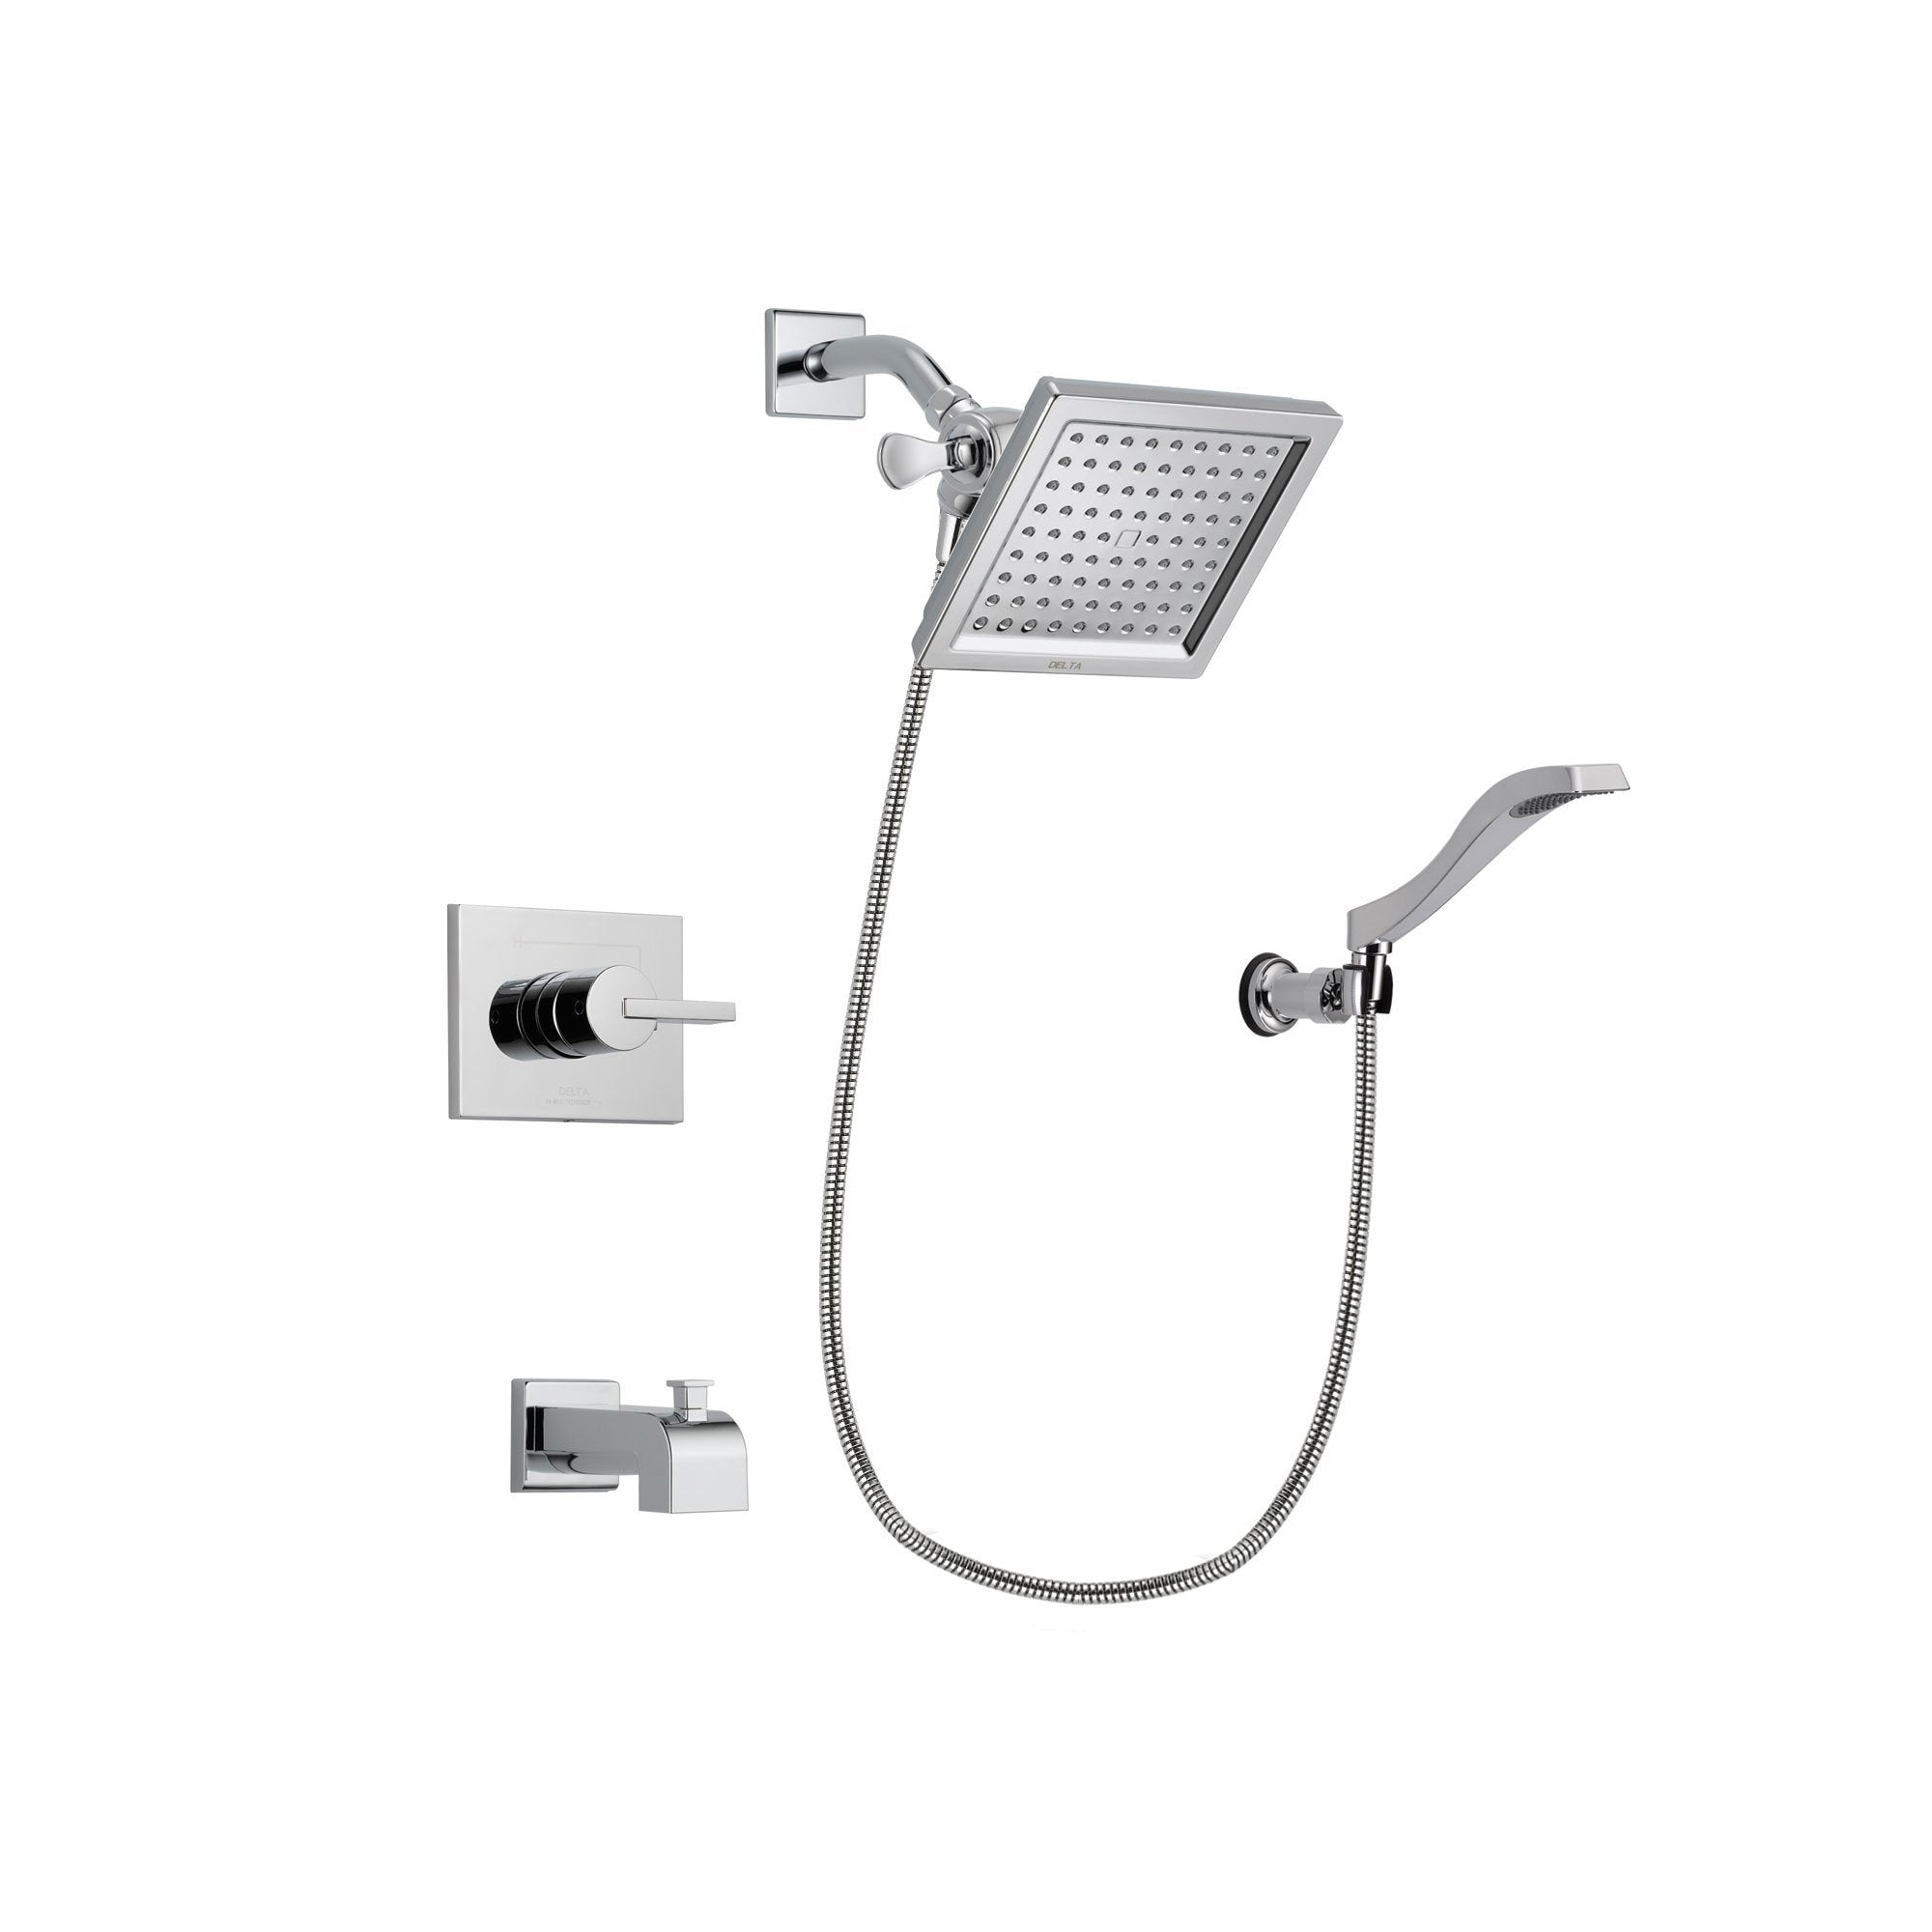 Delta Vero Chrome Tub and Shower Faucet System Package with Hand Shower DSP0026V